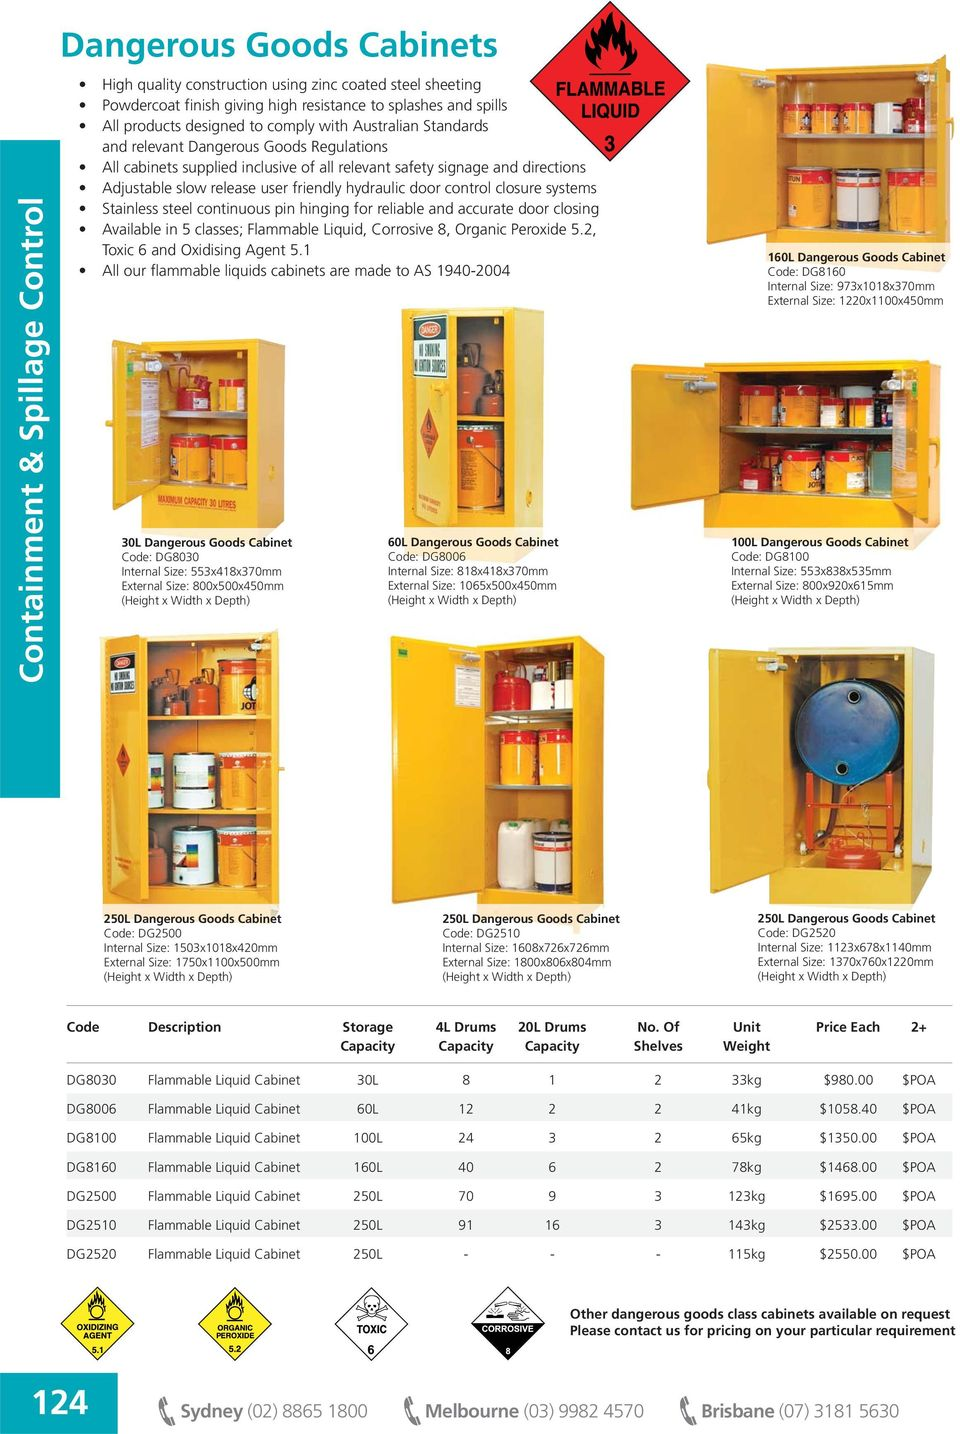 systems Stainless steel continuous pin hinging for reliable and accurate door closing Available in 5 classes; Flammable Liquid, Corrosive 8, Organic Peroxide 5.2, Toxic 6 and Oxidising Agent 5.